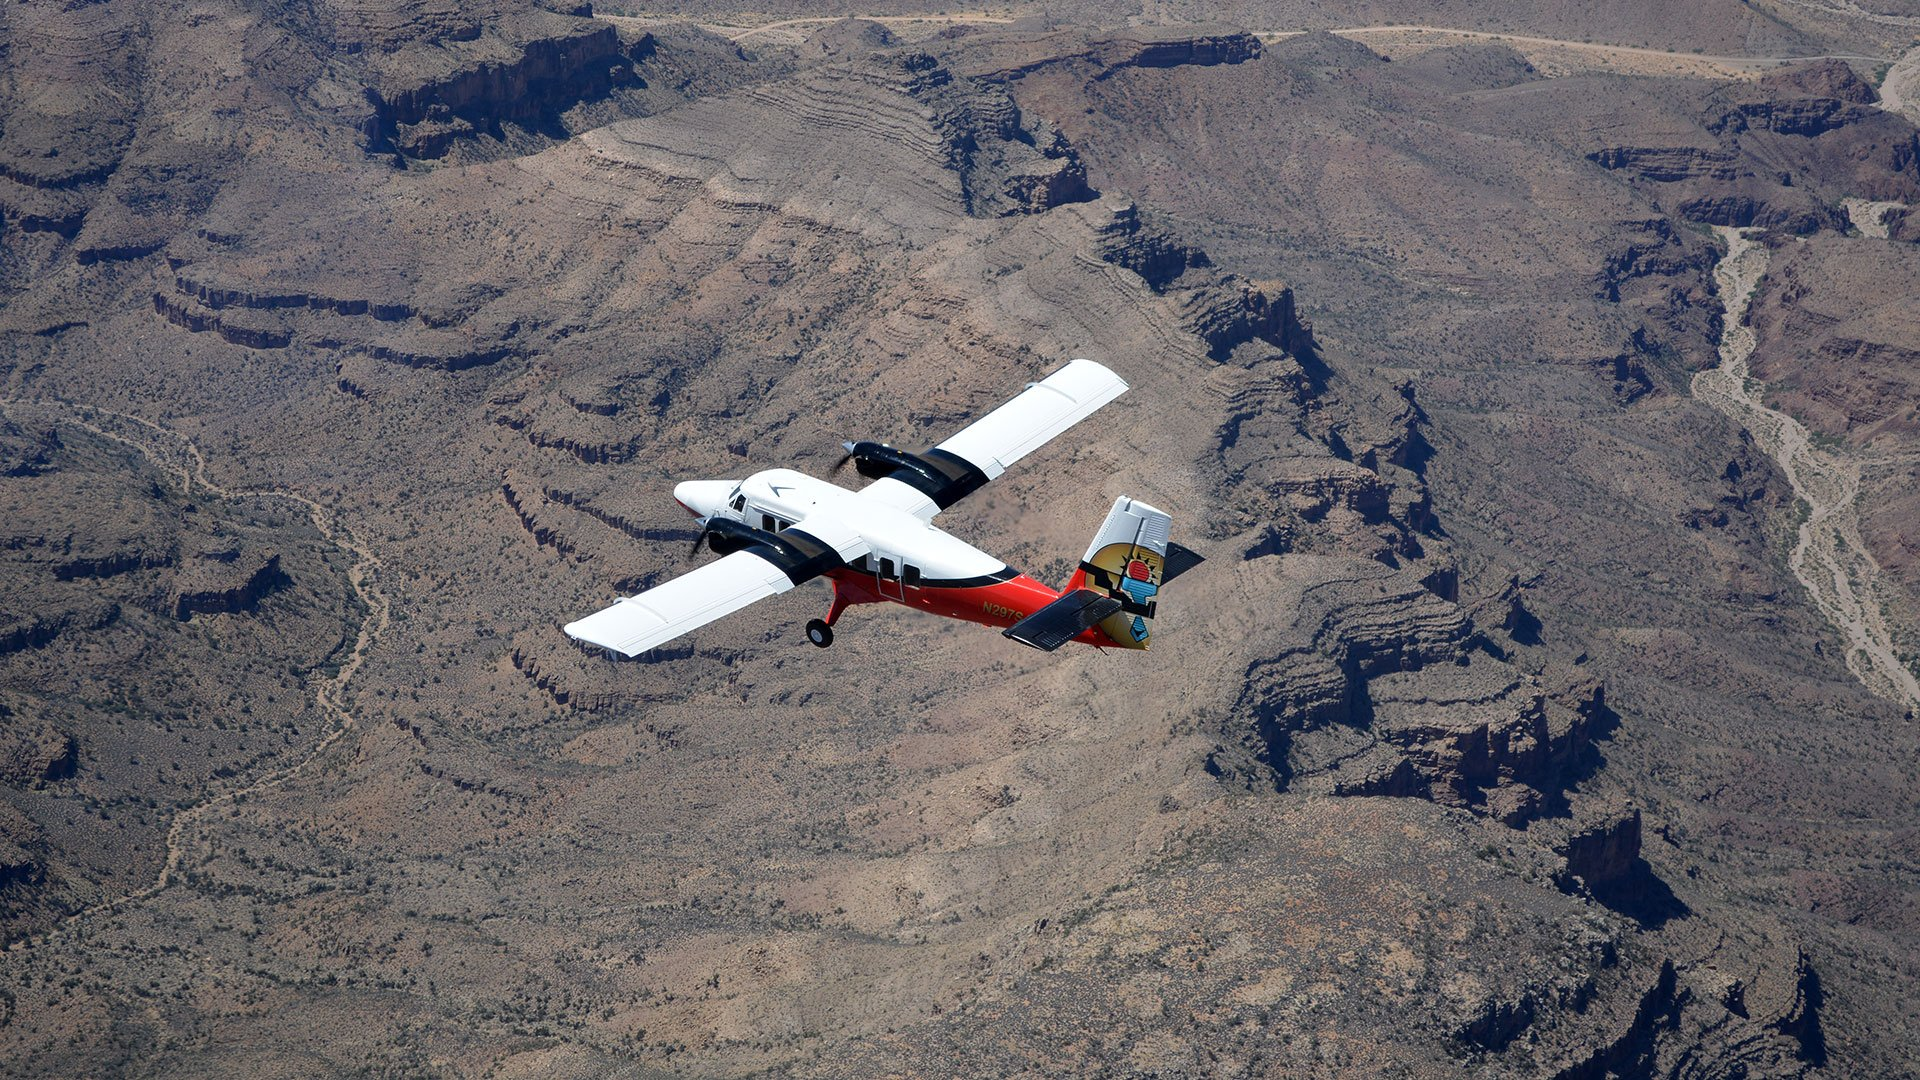 A Grand Canyon airplane tour flies over the desert scenery.